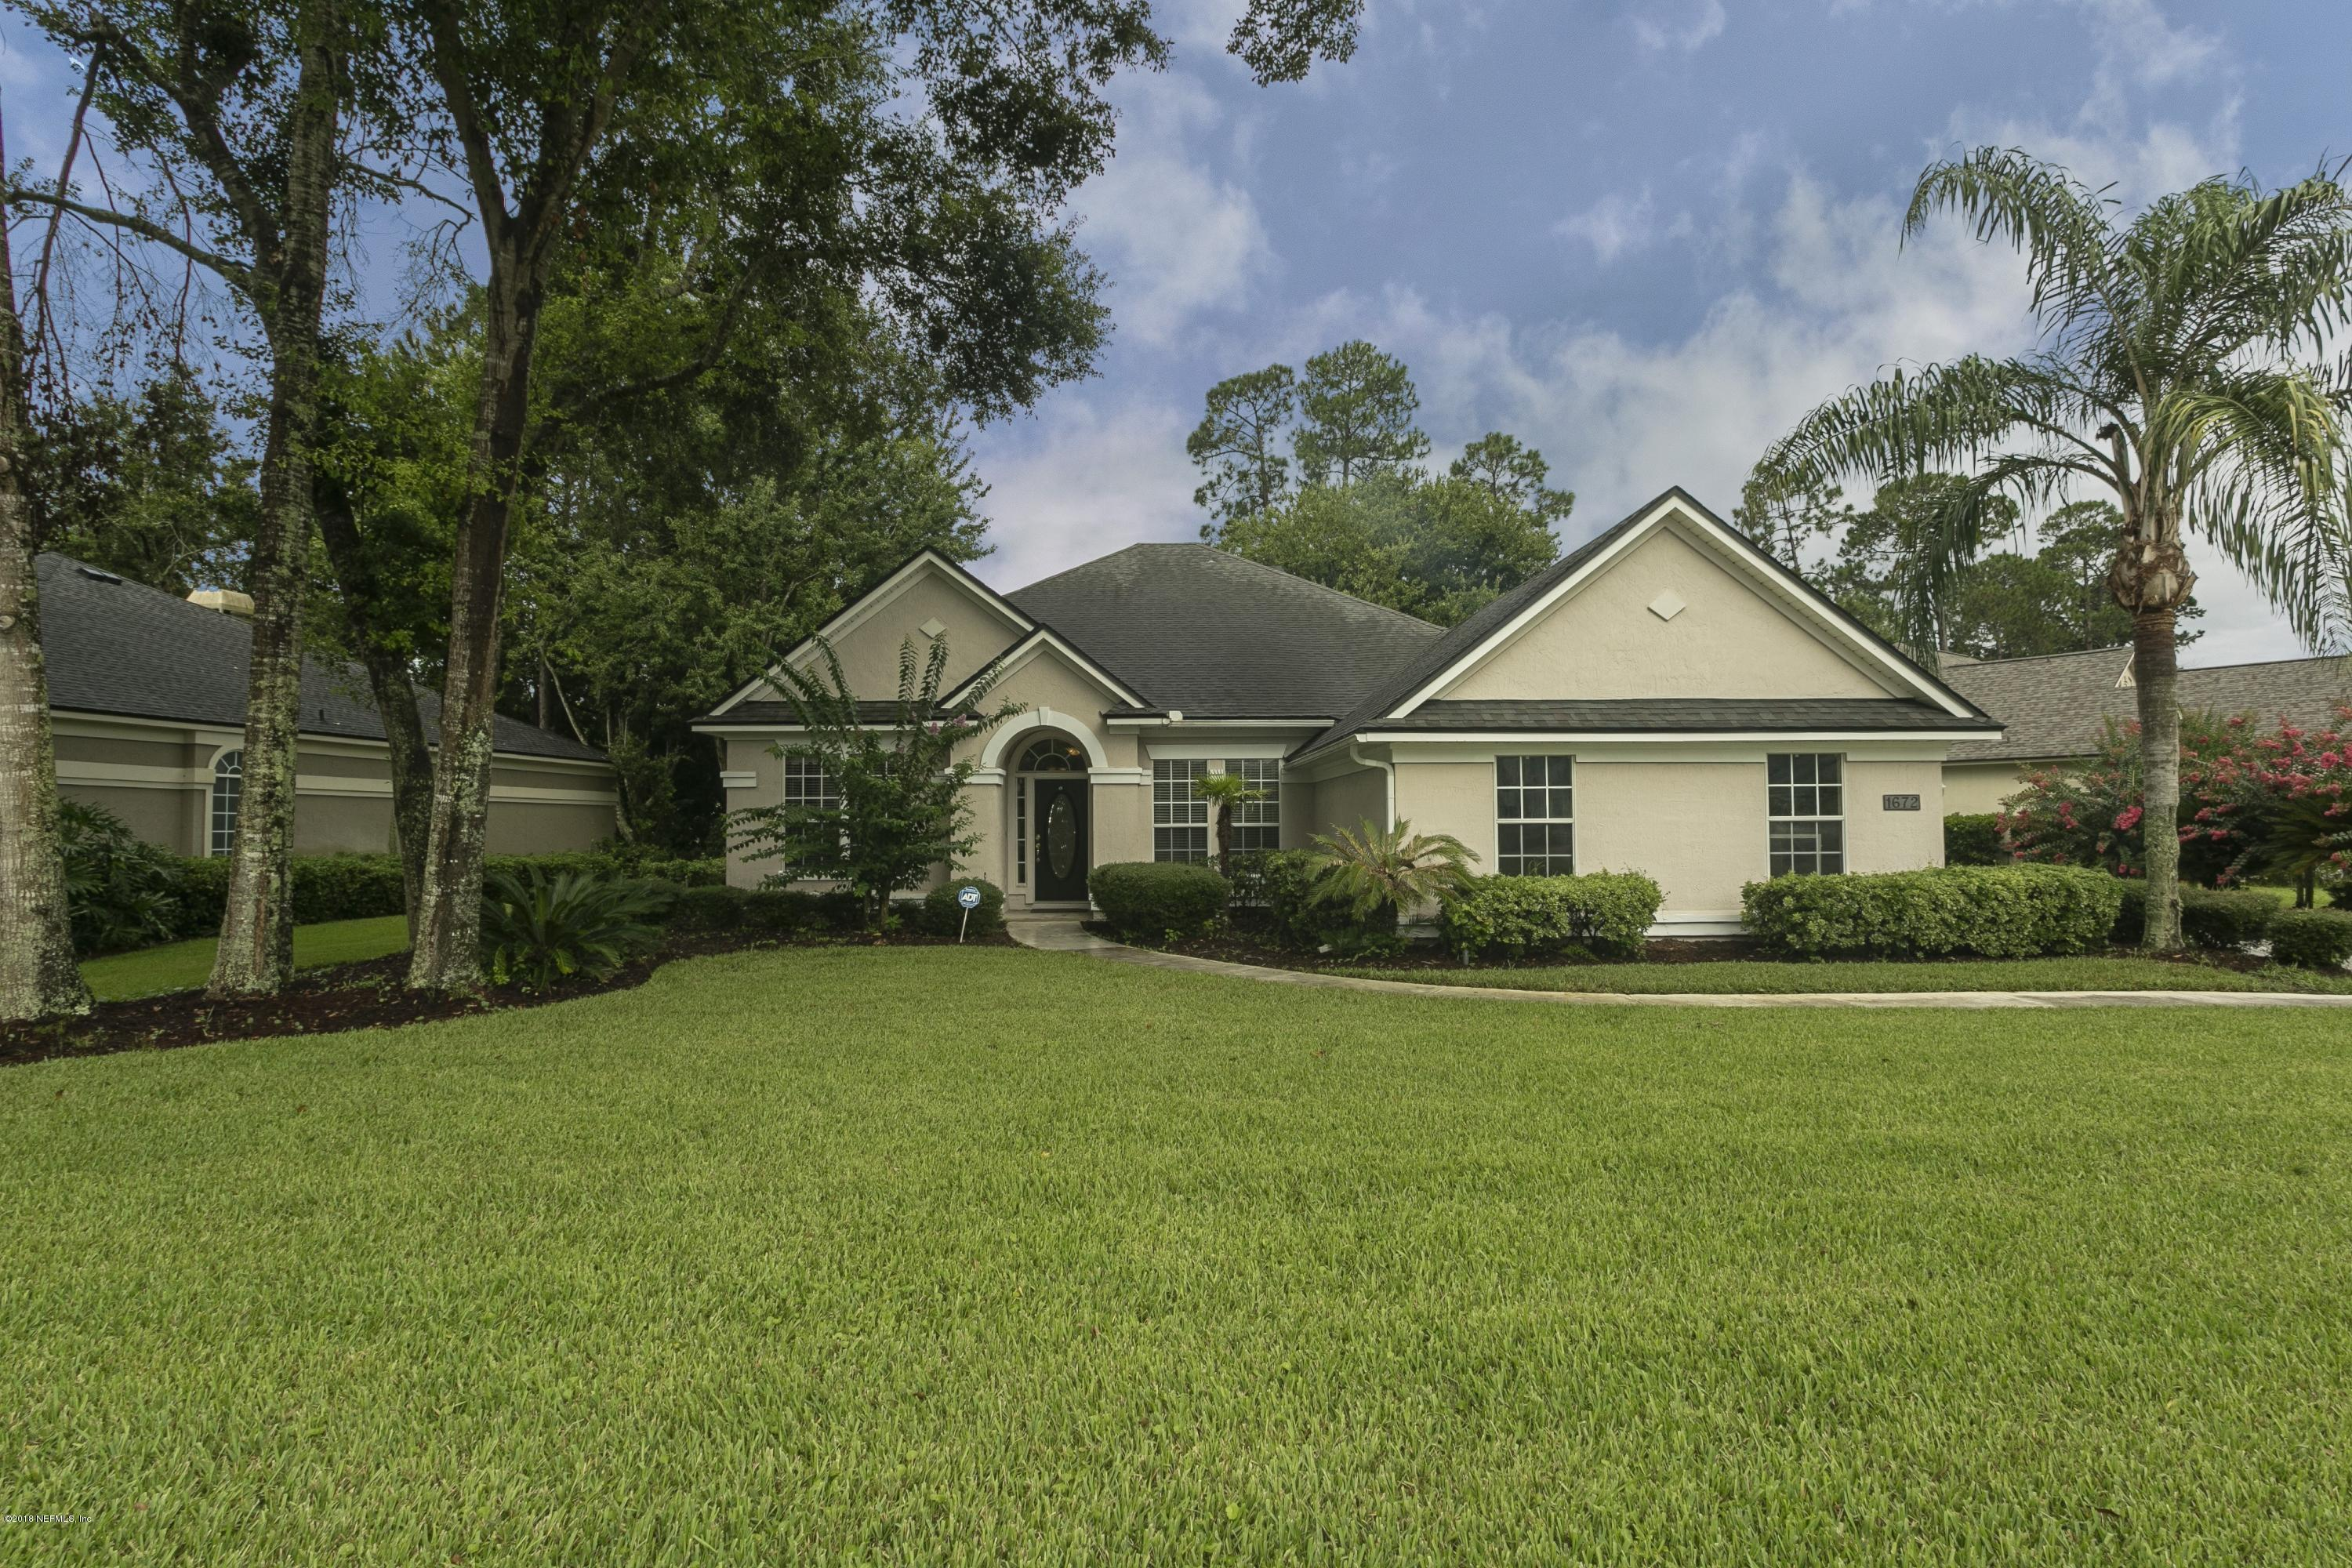 1672 COUNTRY WALK, FLEMING ISLAND, FLORIDA 32003, 4 Bedrooms Bedrooms, ,4 BathroomsBathrooms,Residential - single family,For sale,COUNTRY WALK,949507